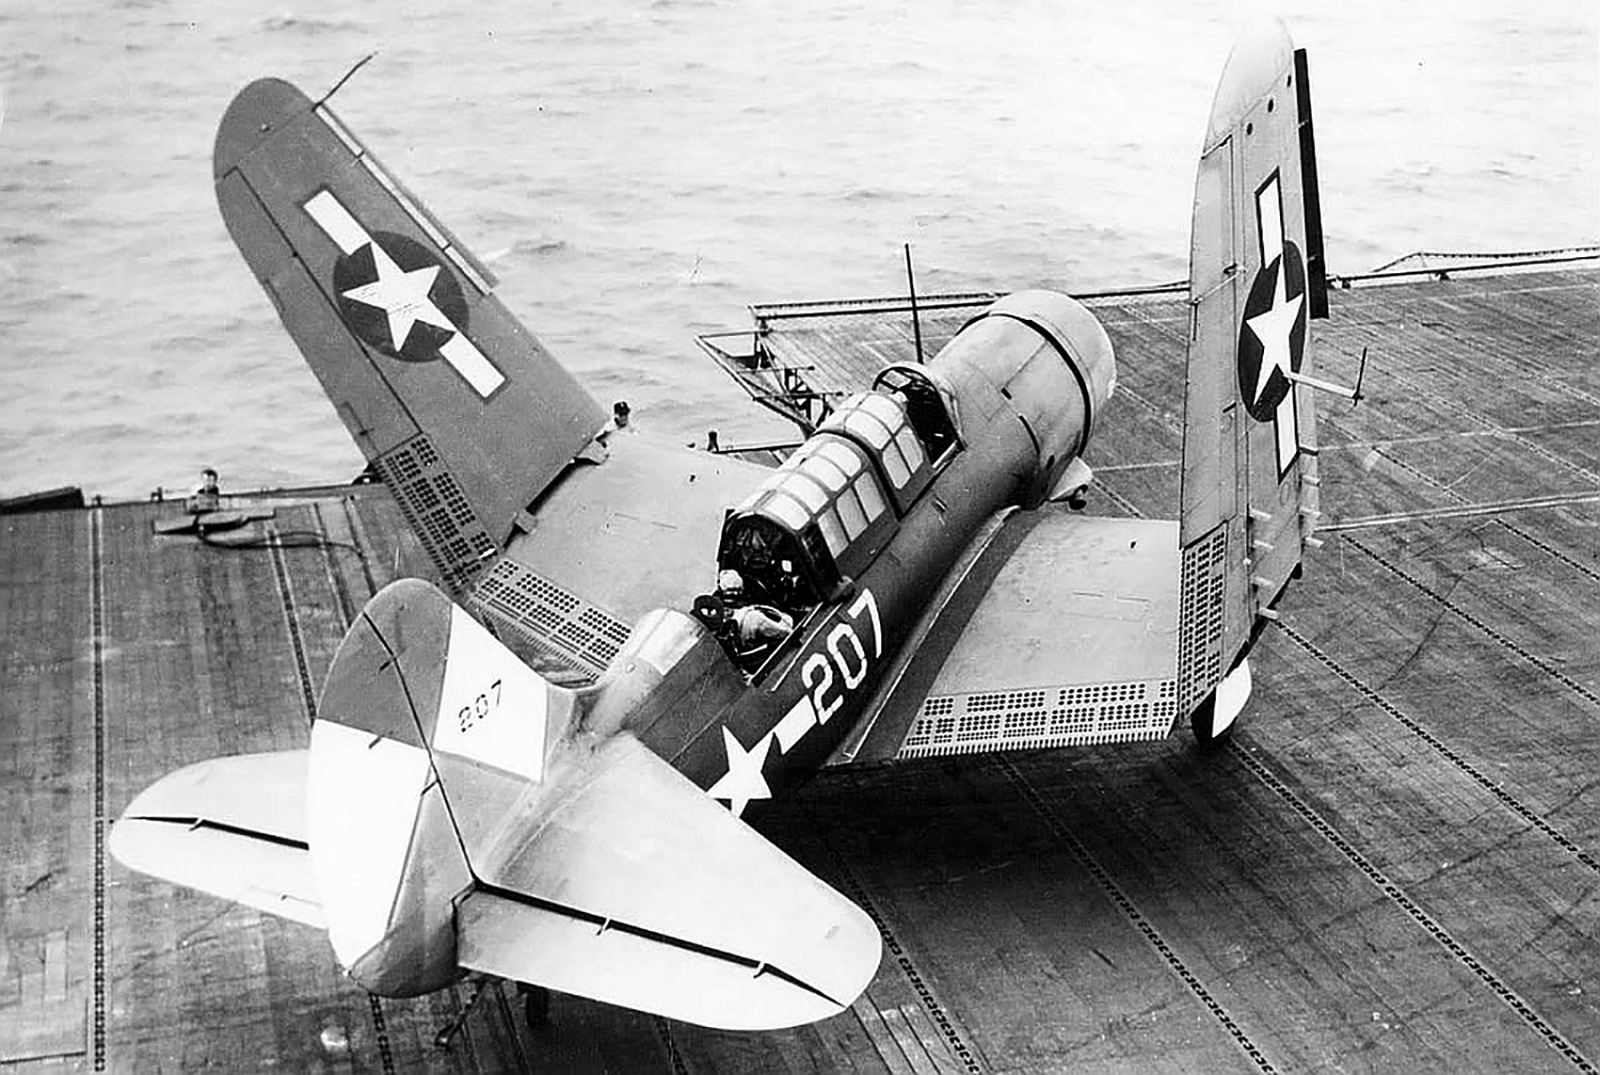 Curtiss SB2C 3 Helldiver VB 83 White 207 CV 9 USS Essex 1945 01